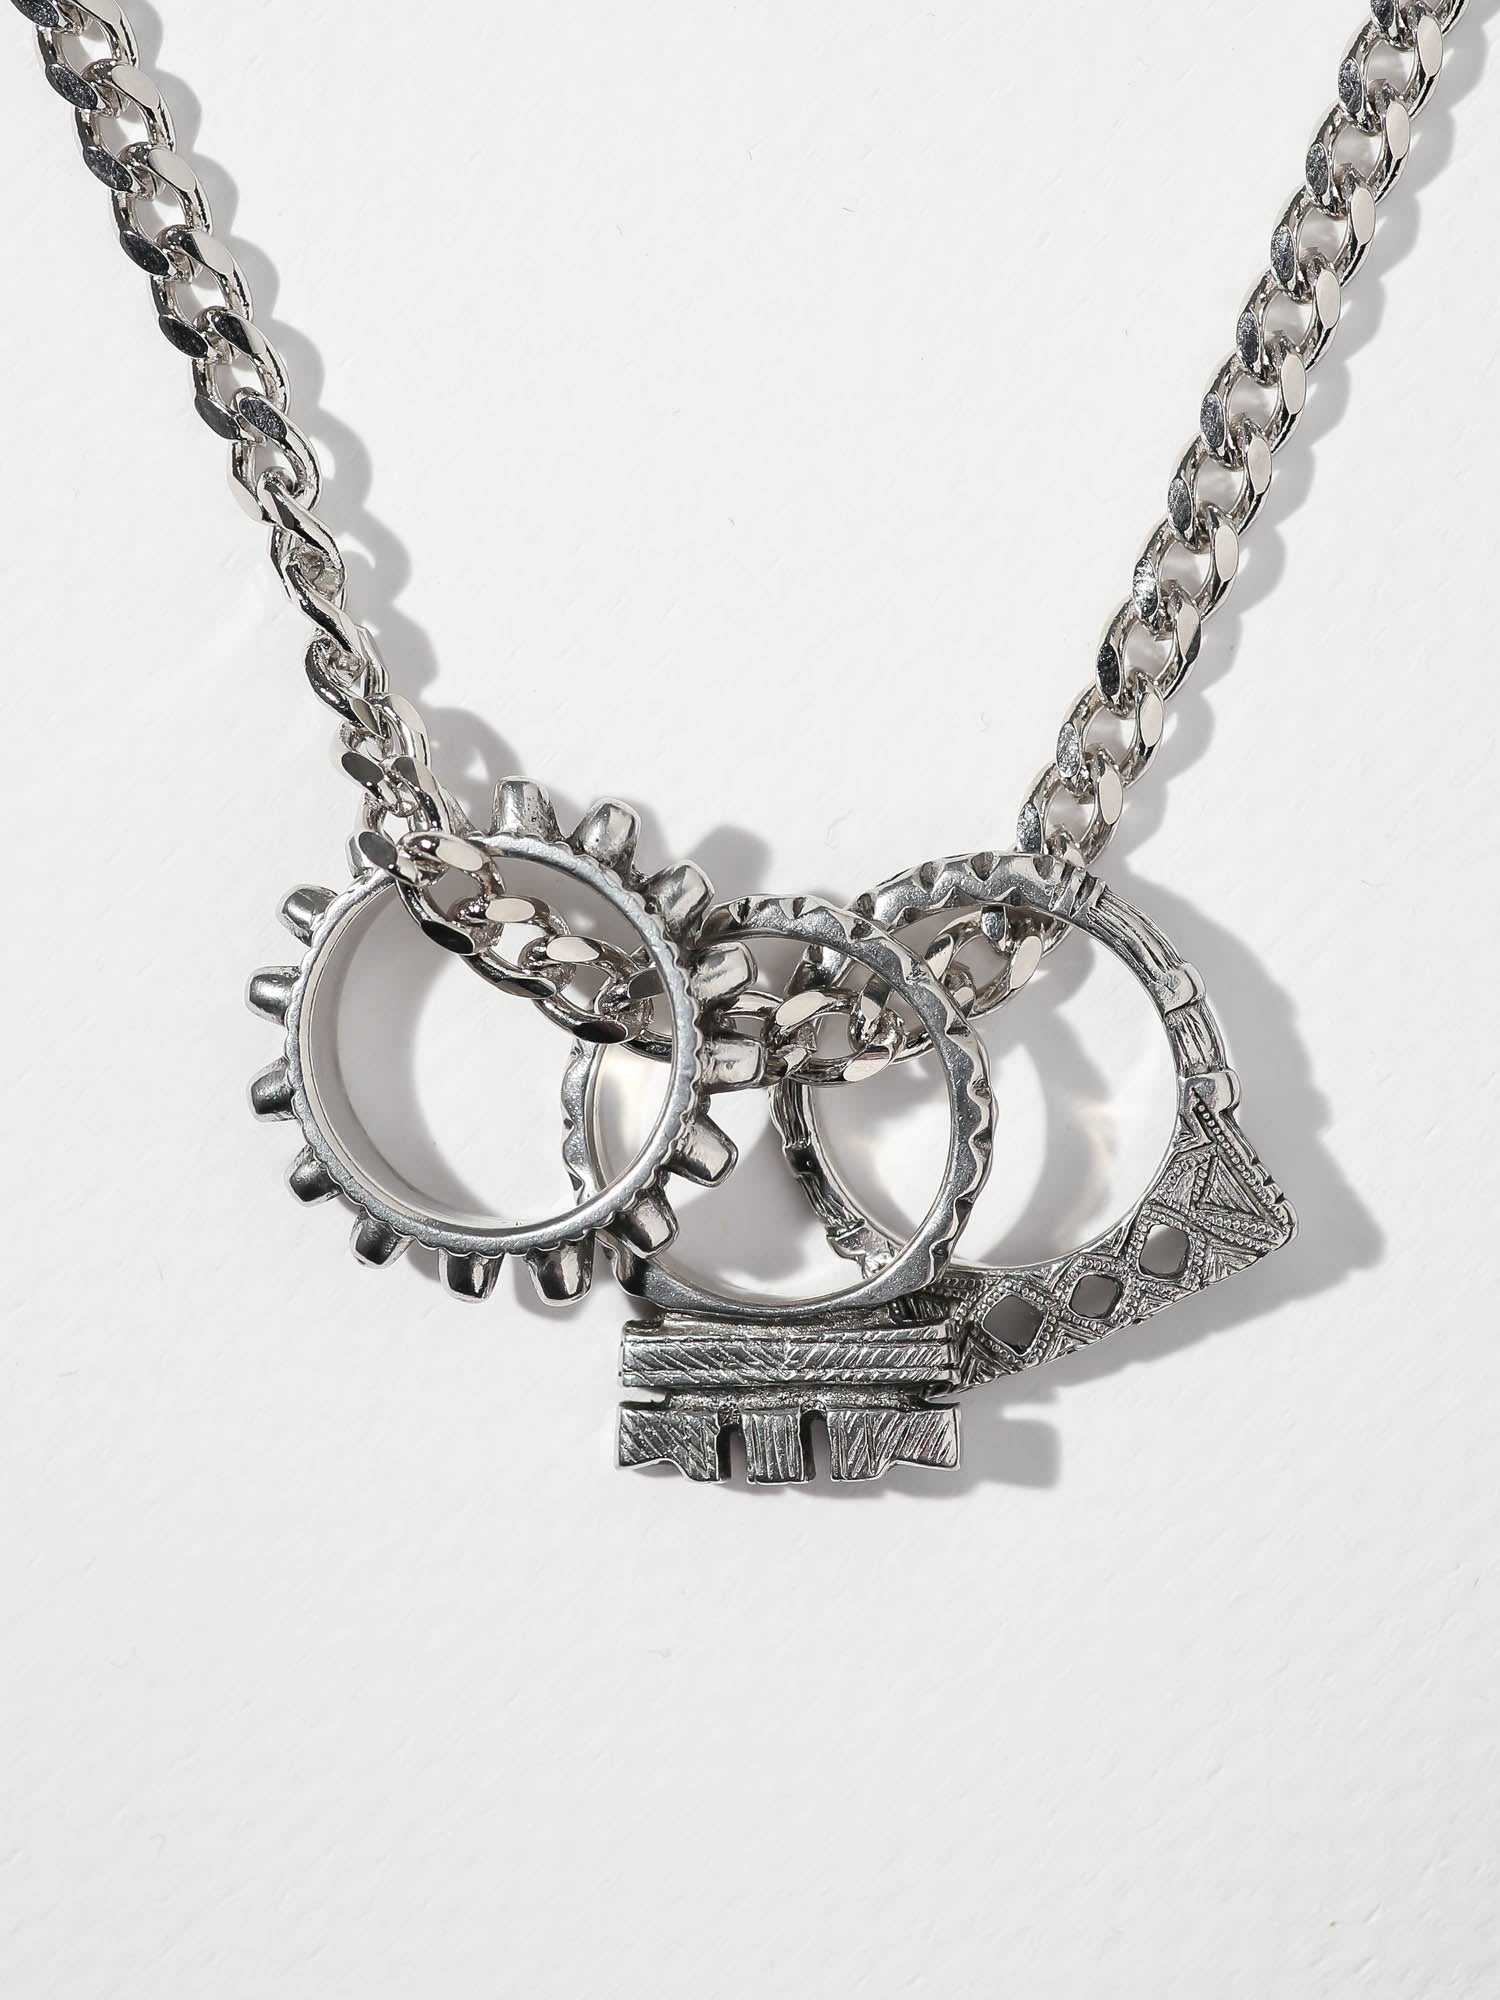 The Tri-Ring Necklace - Silver